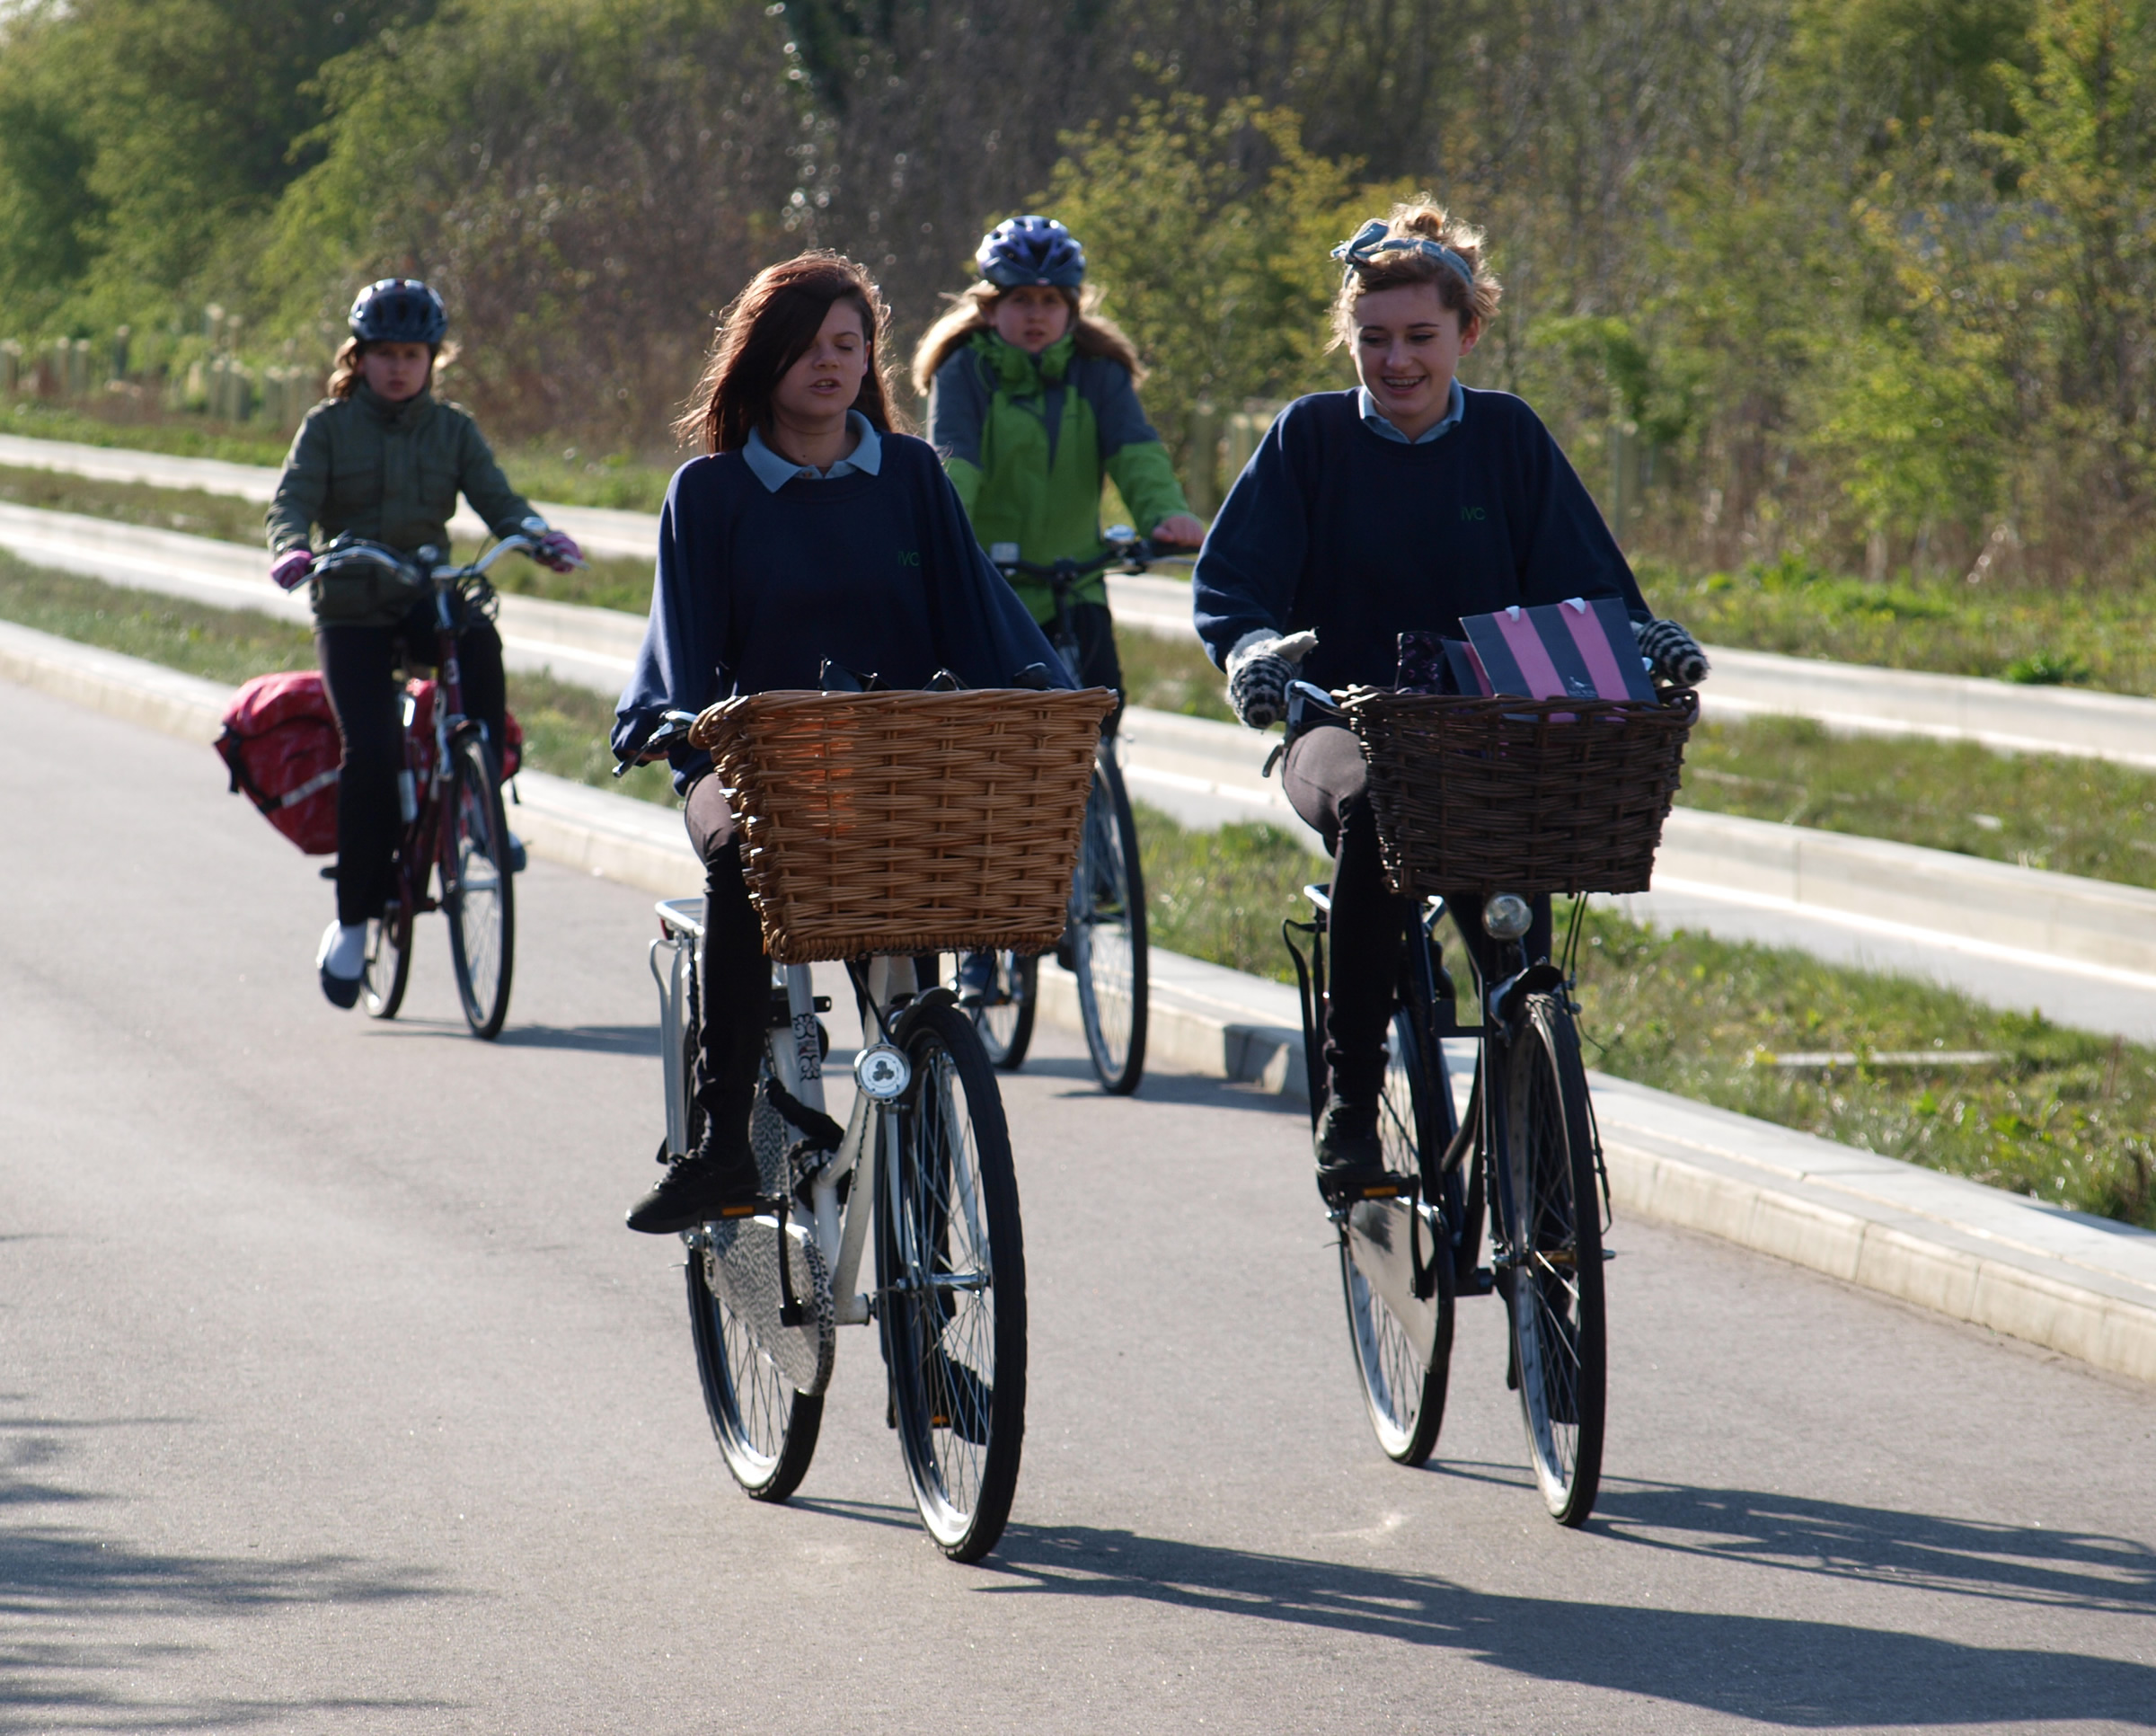 Cyclists on the busway cycleway. Image: Klaas Brumann